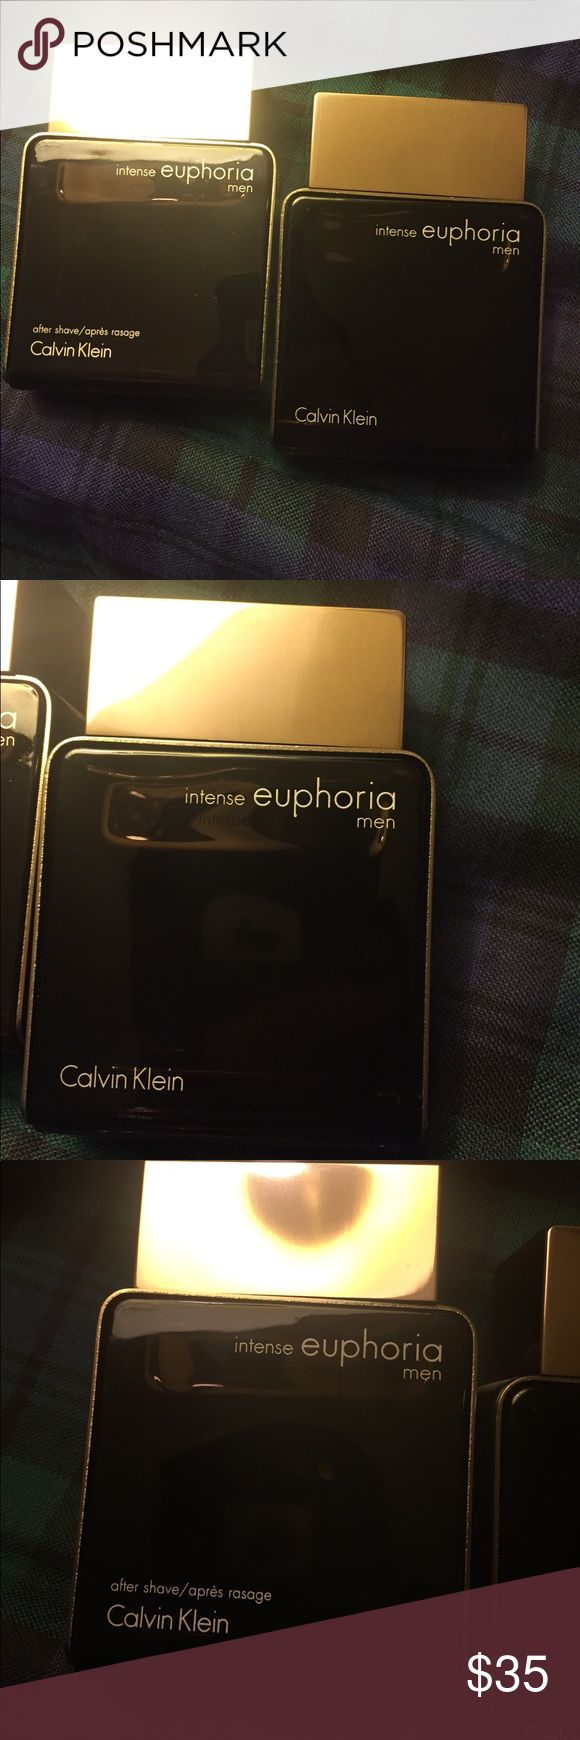 Calvin Klein-Men's Cologne & After Shave set 100ml Euphoria- Set of Cologne and aftershave Full bottles Calvin Klein Other